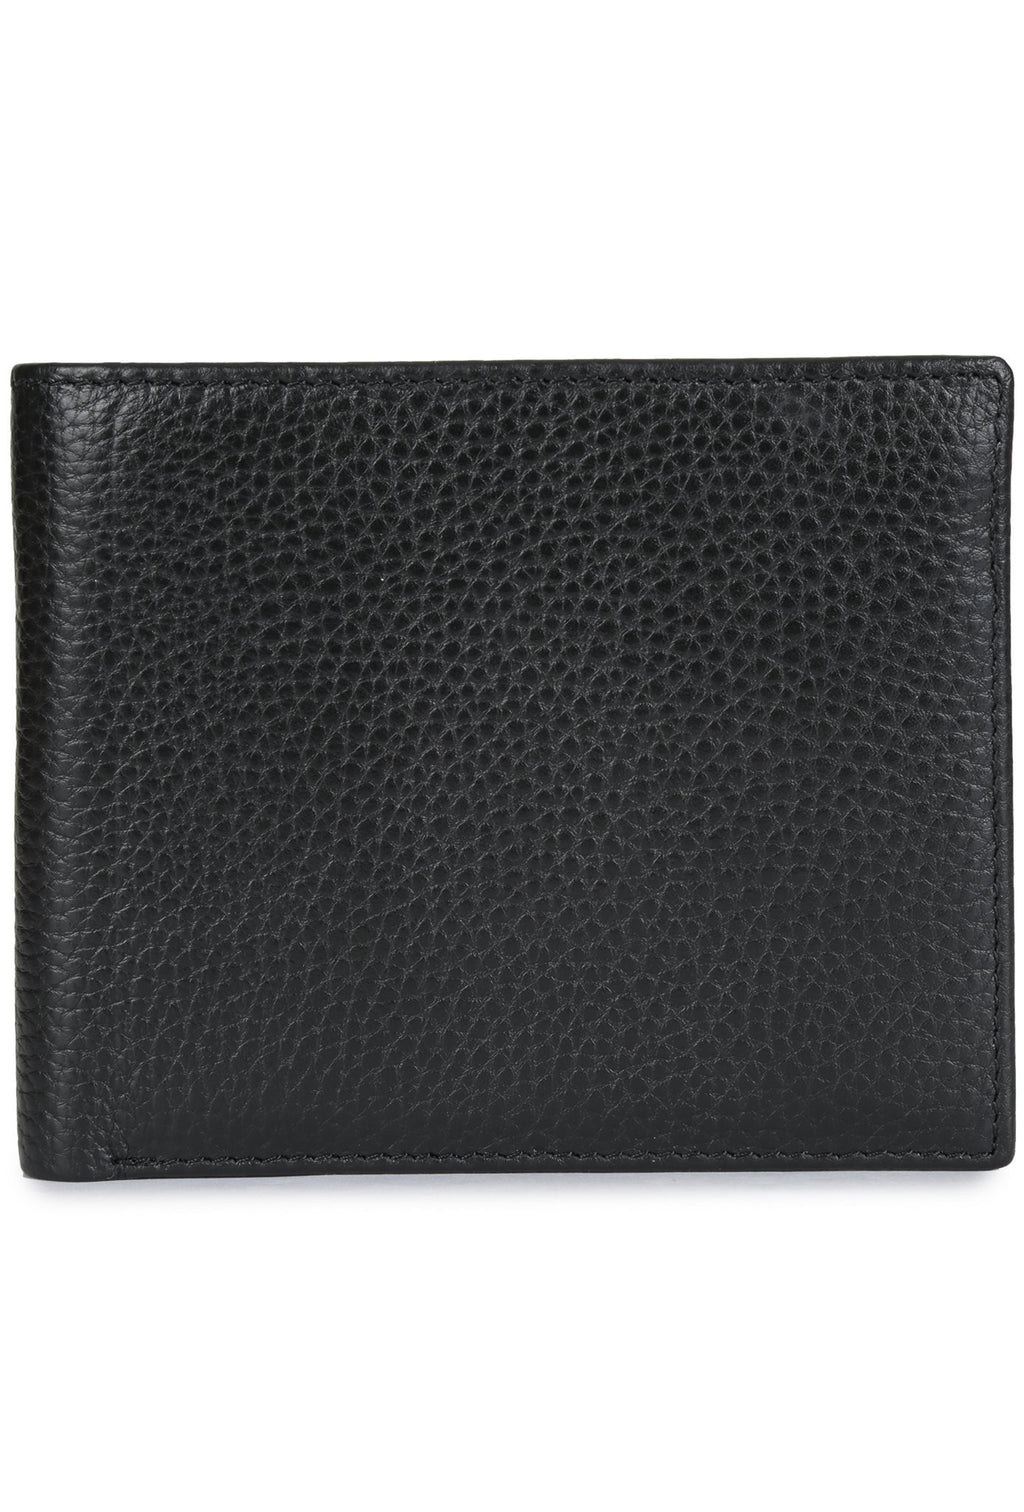 ZANOBI - Pebbled Leather Wallet - Black